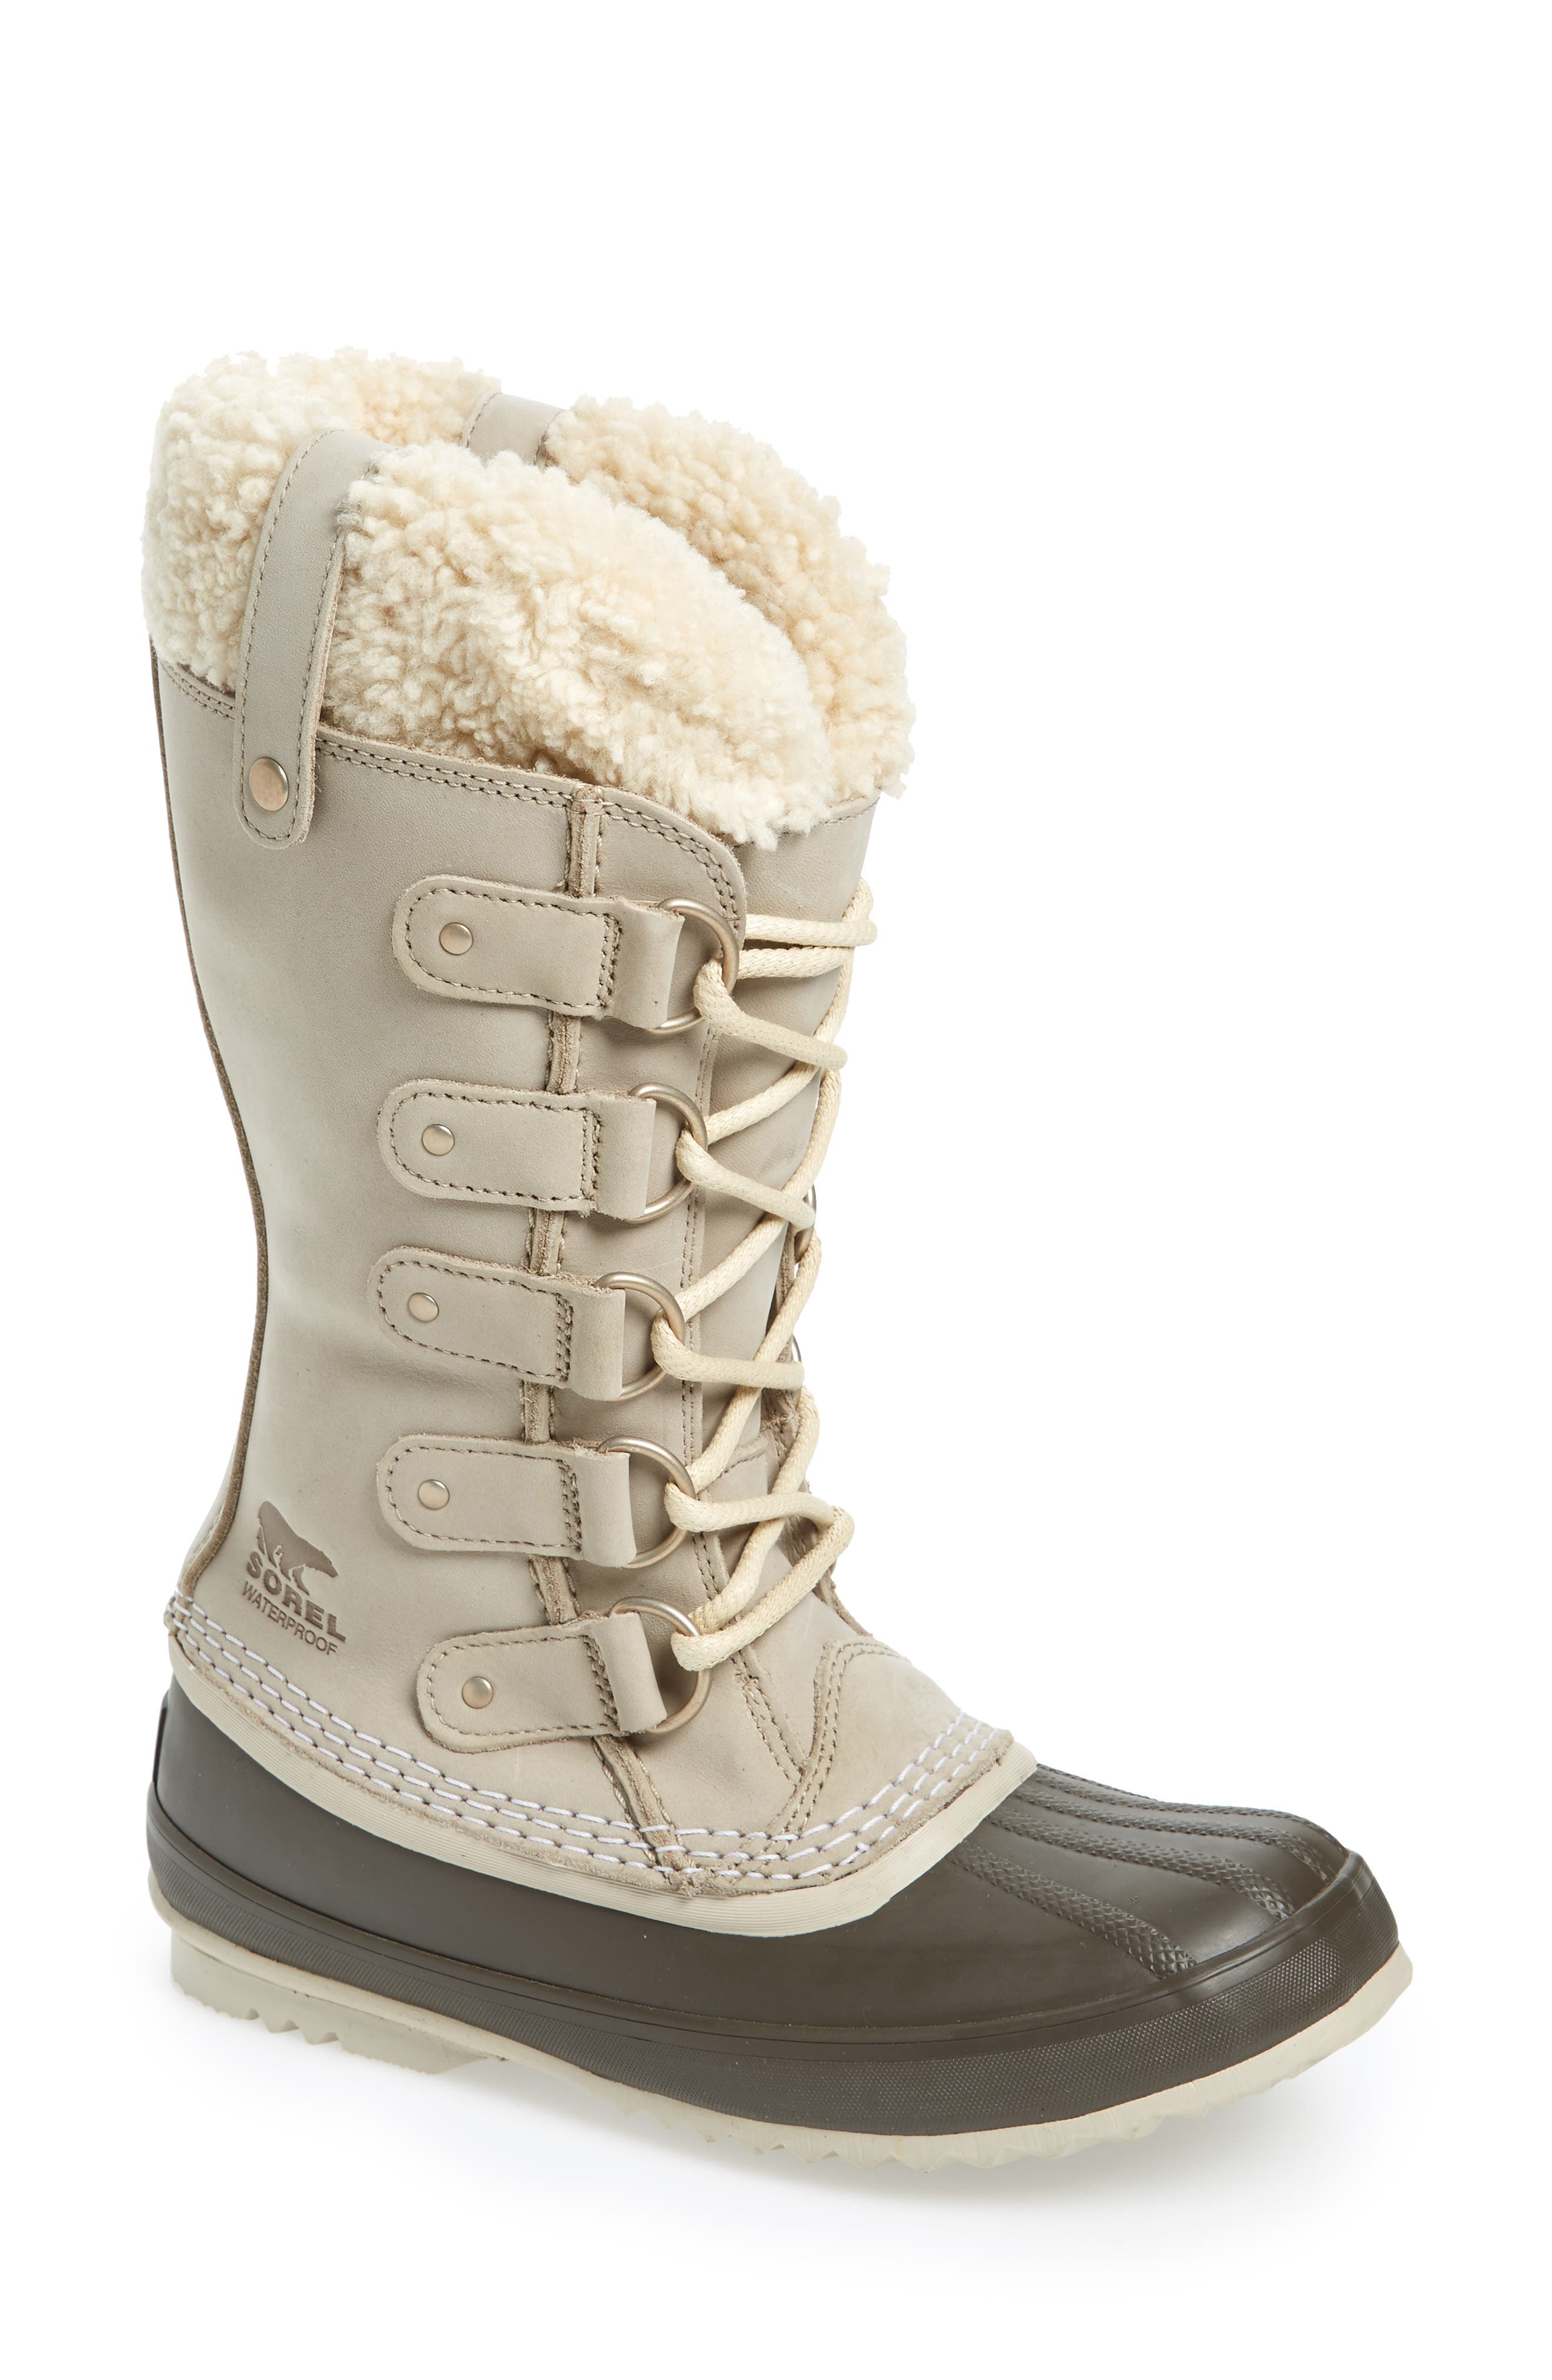 Joan of Arctic<sup>™</sup> Lux Waterproof Winter Boot with Genuine  Shearling Cuff,                         Main,                         color, Ancient Fossil/ Mud